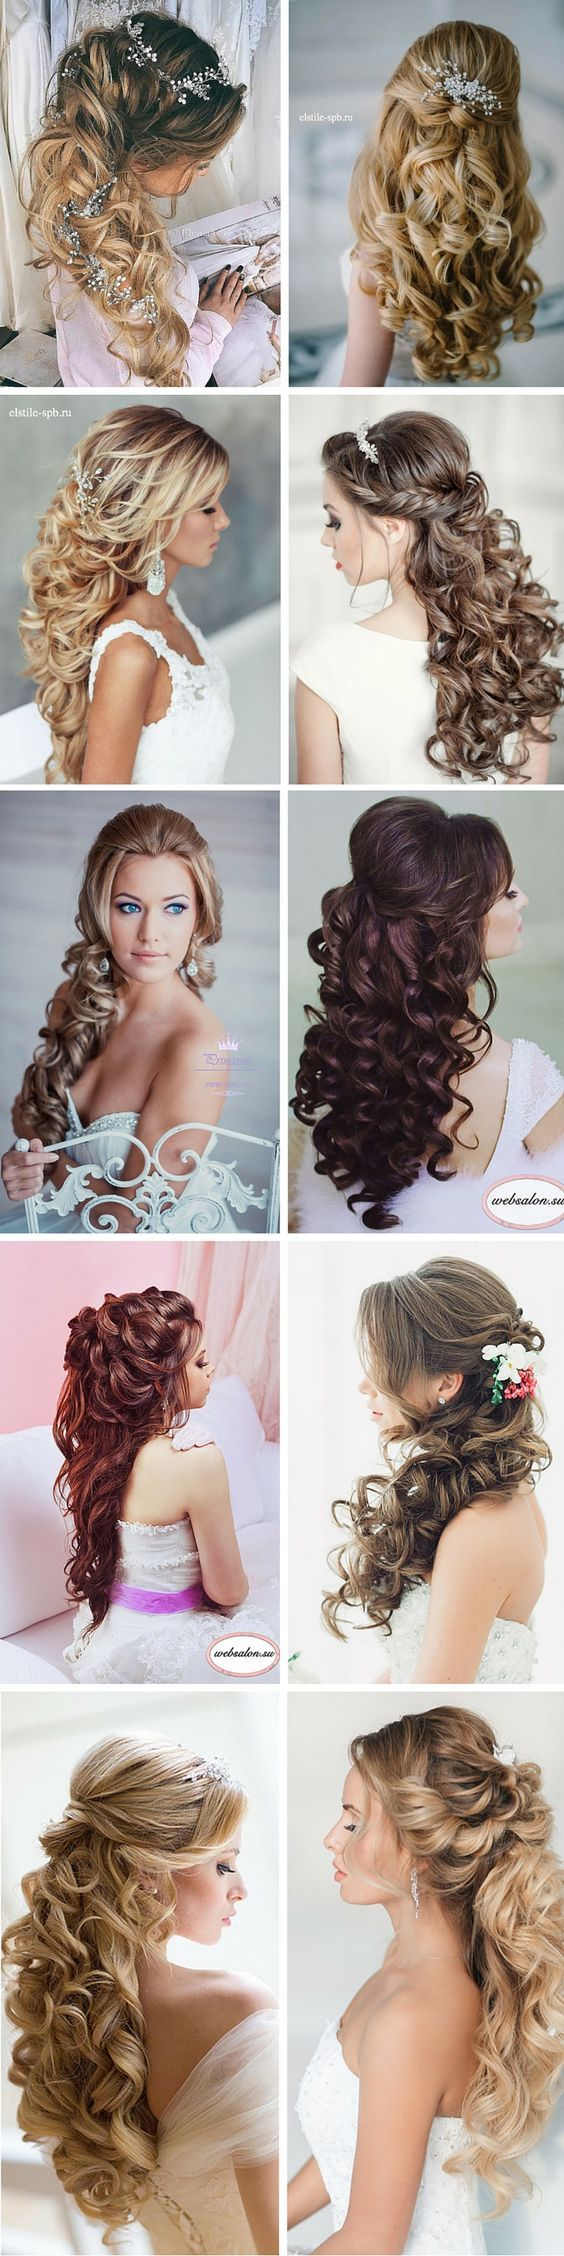 best 25+ long prom hair ideas on pinterest | prom hairstyles for